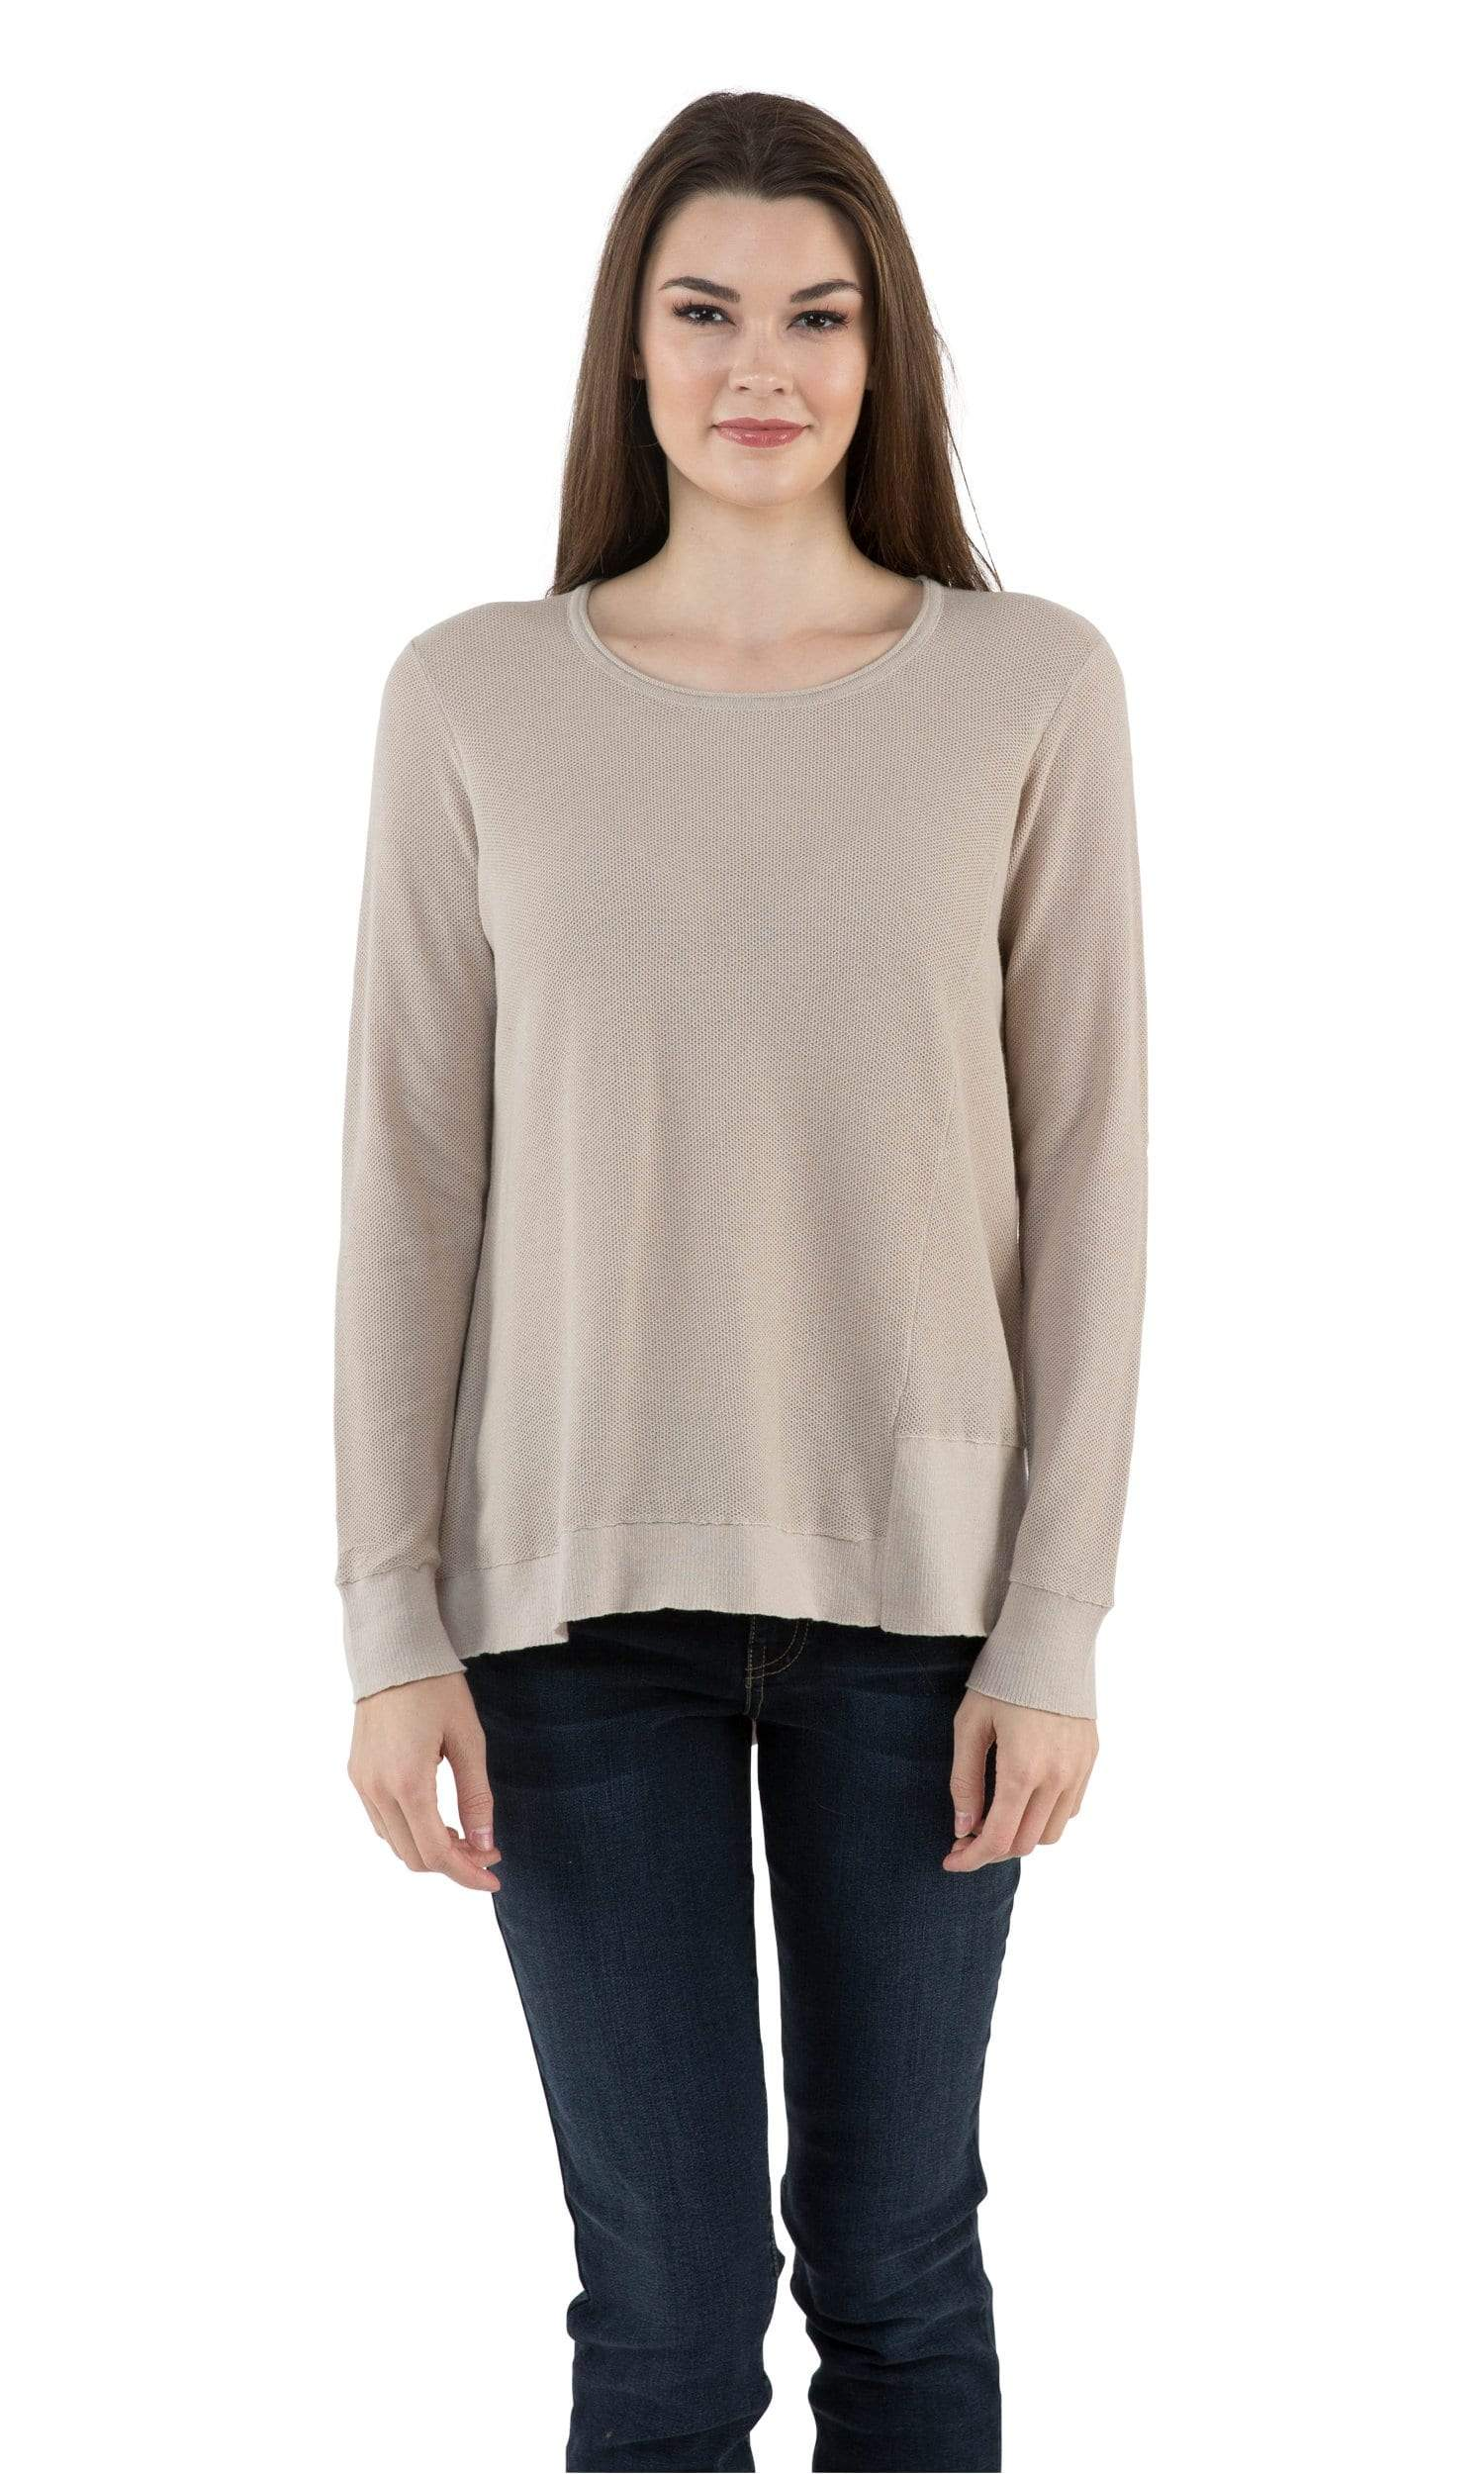 Sogi Pique Stitch Asymmetric Sweater